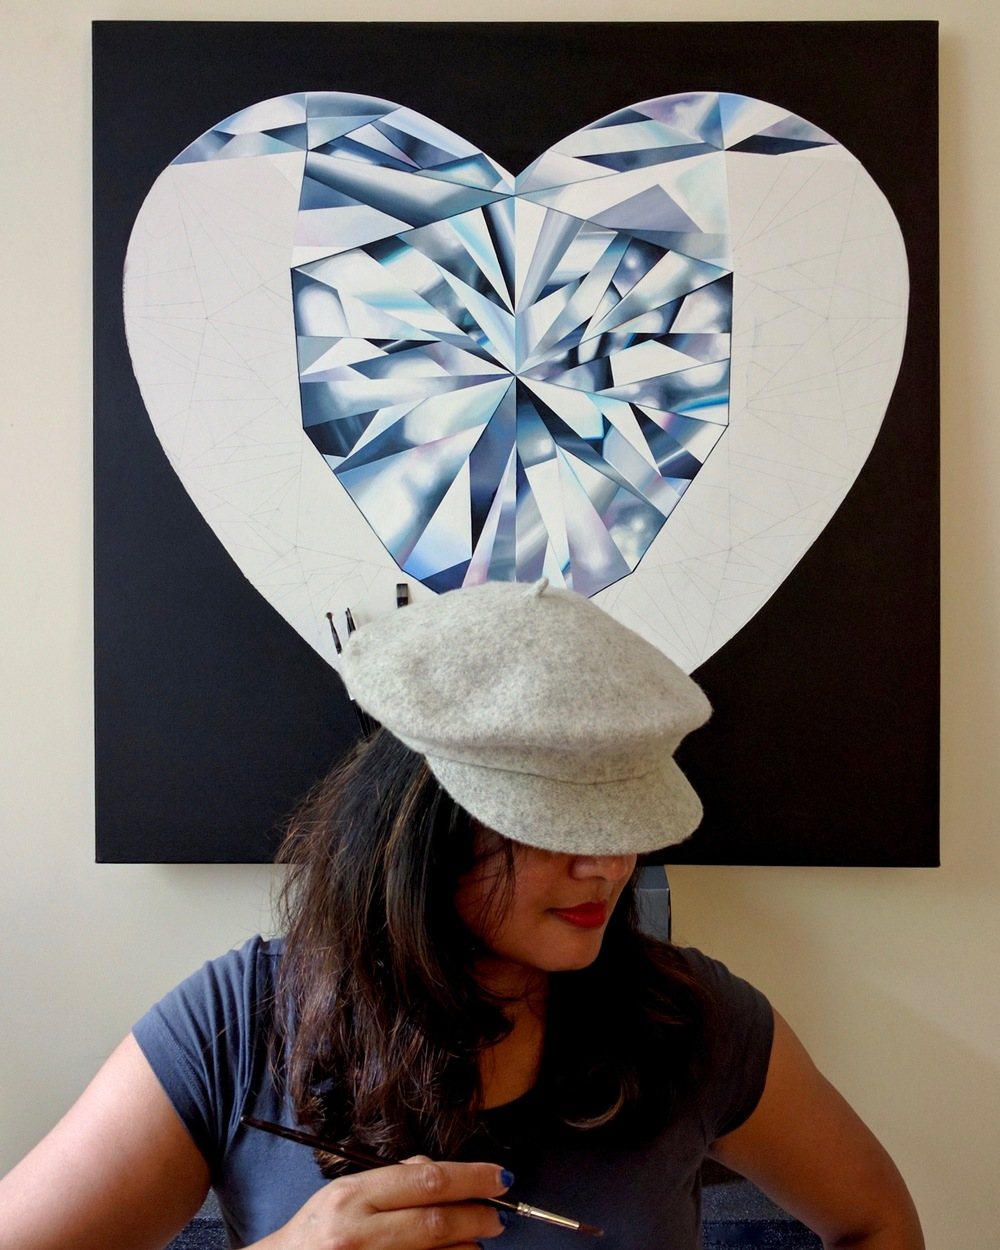 When your heart is in the right place. 'Pure Heart' white heart-shaped diamond painting in progress. Reena Ahluwalia in her studio. ©Reena Ahluwalia